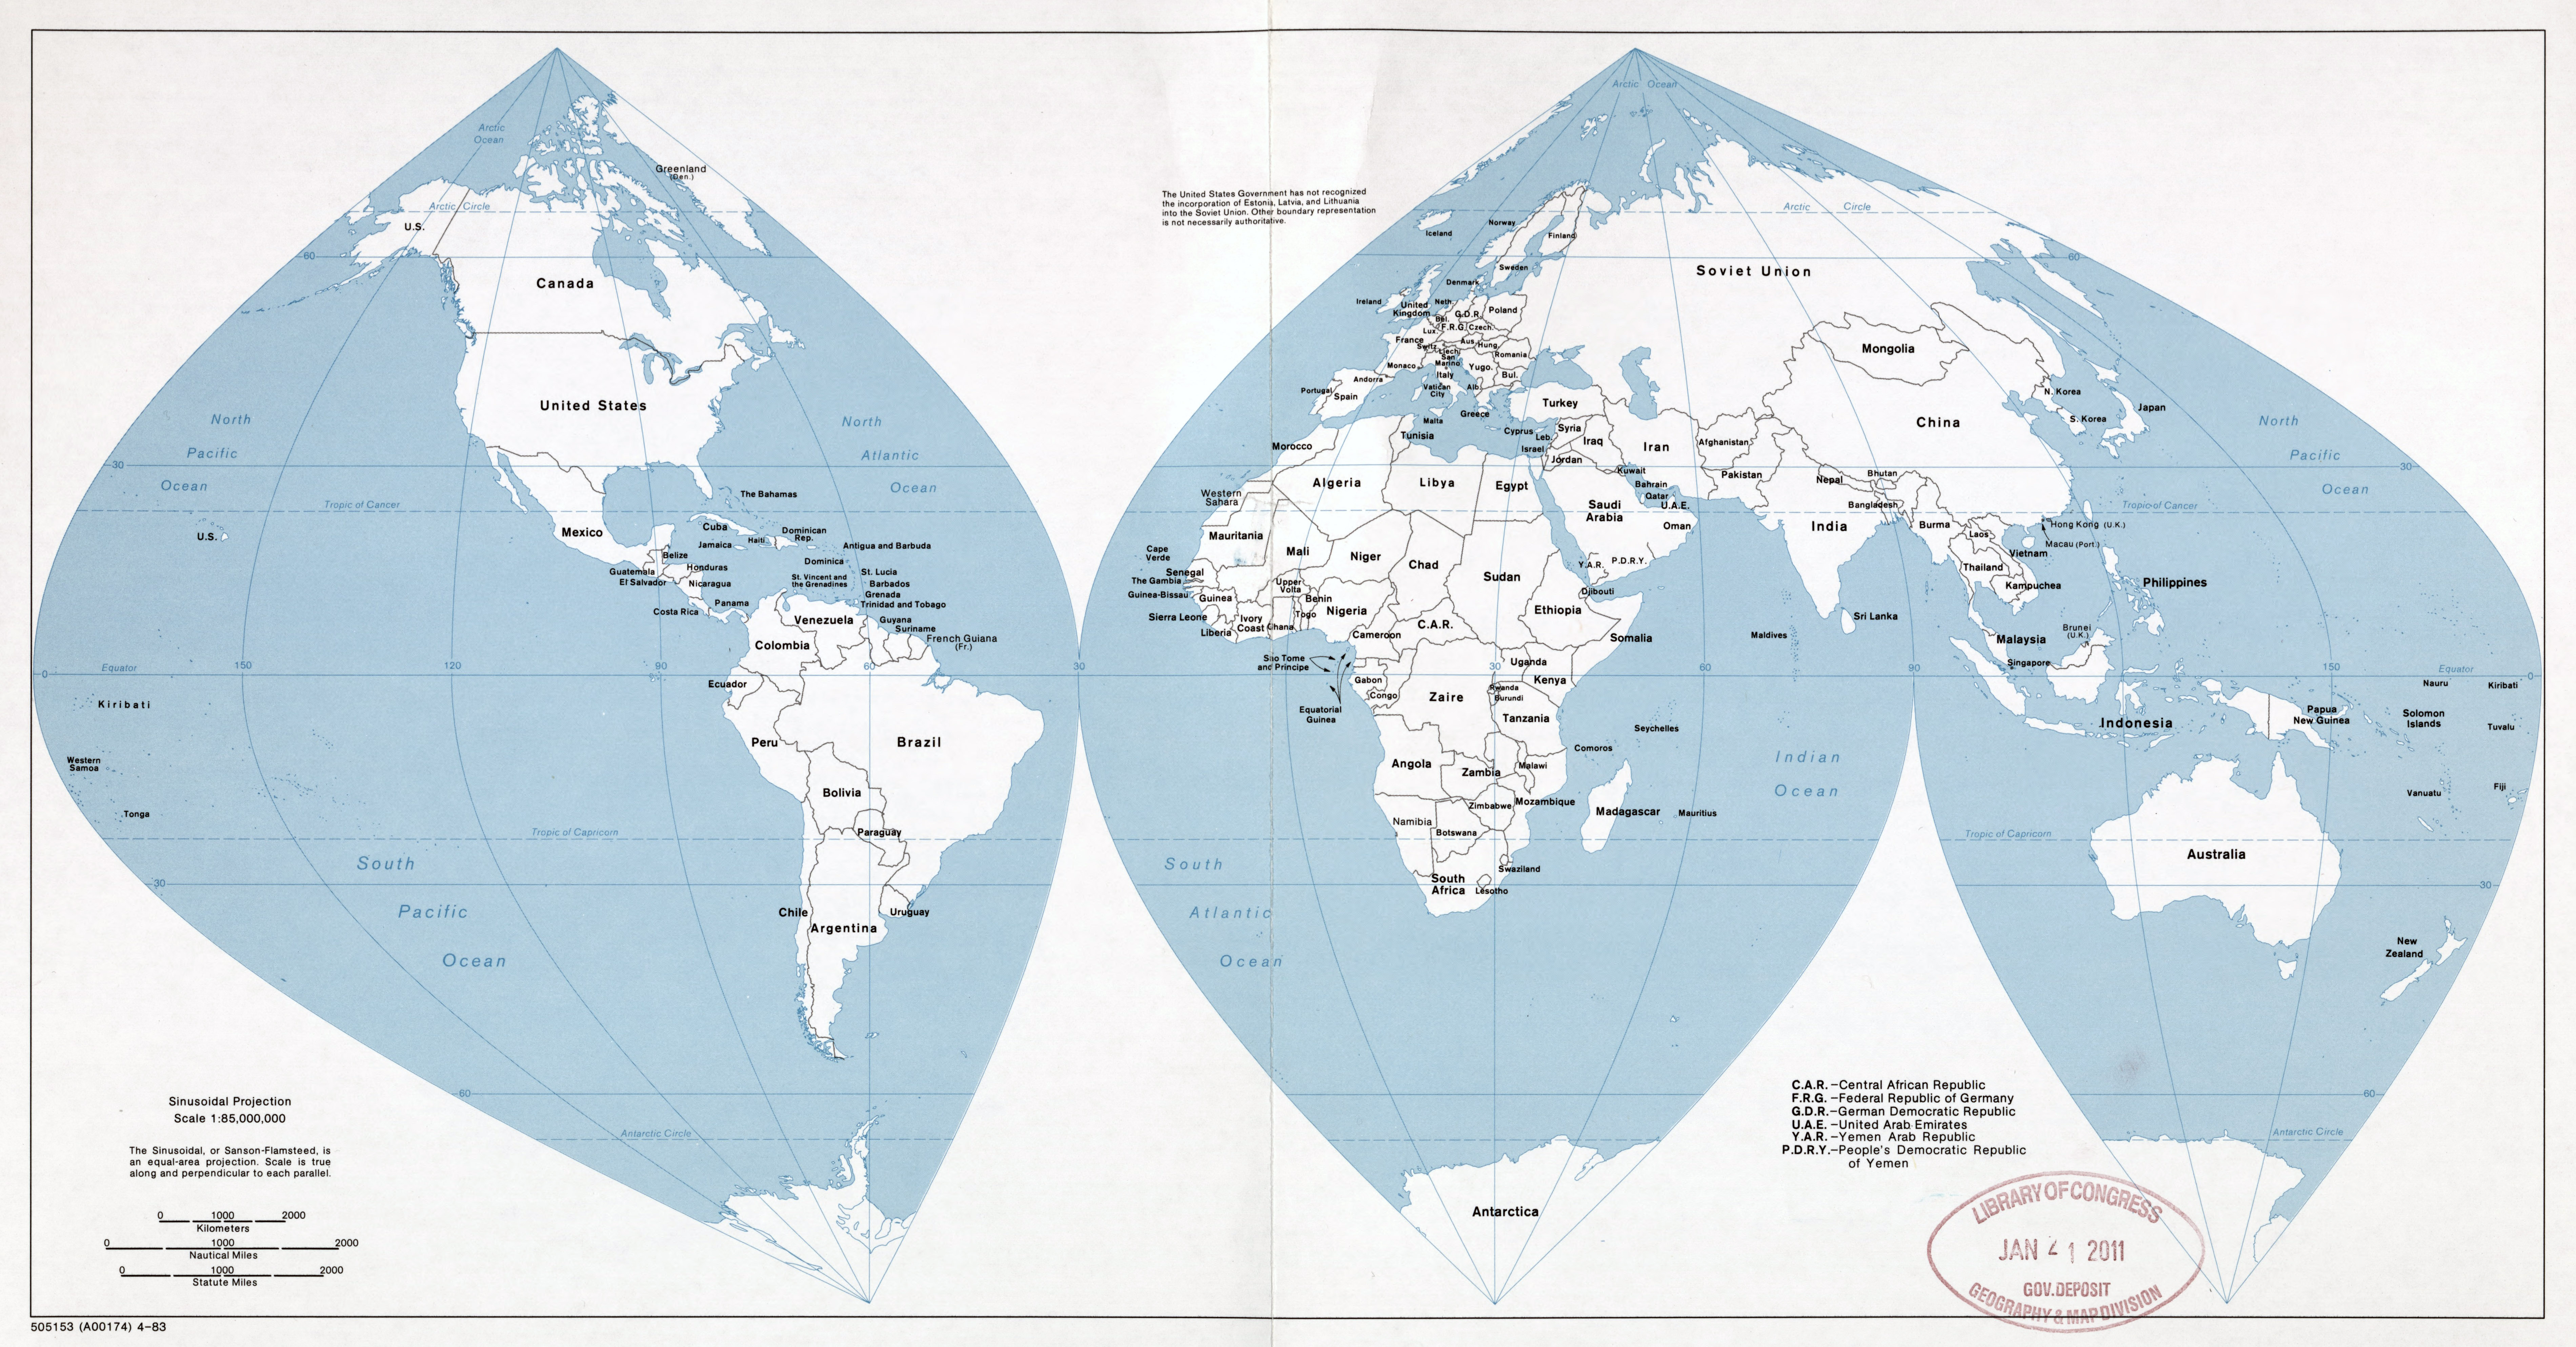 Large scale political map of the world 1983 world mapsland large scale political map of the world 1983 gumiabroncs Choice Image